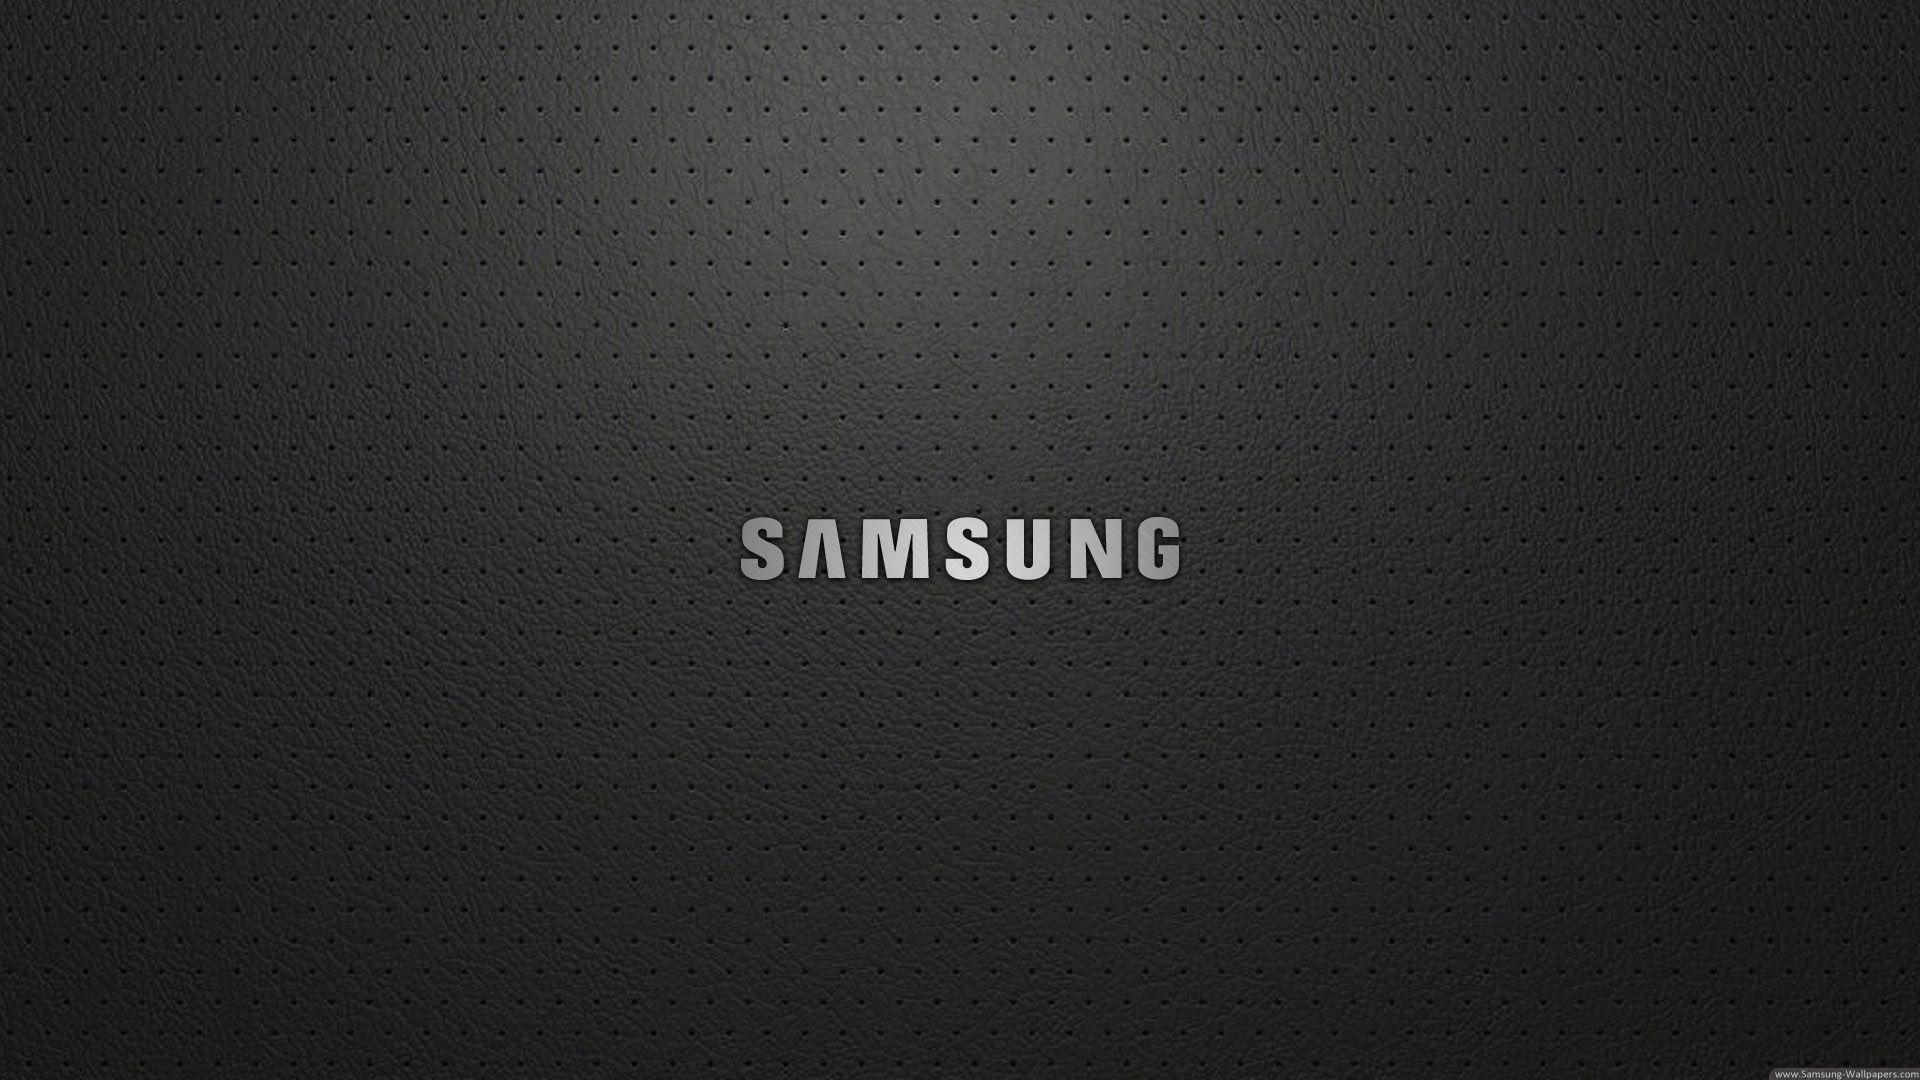 Samsung logo wallpapers wallpaper cave wallpapers logo samsung hd logo backgrounds best desktop voltagebd